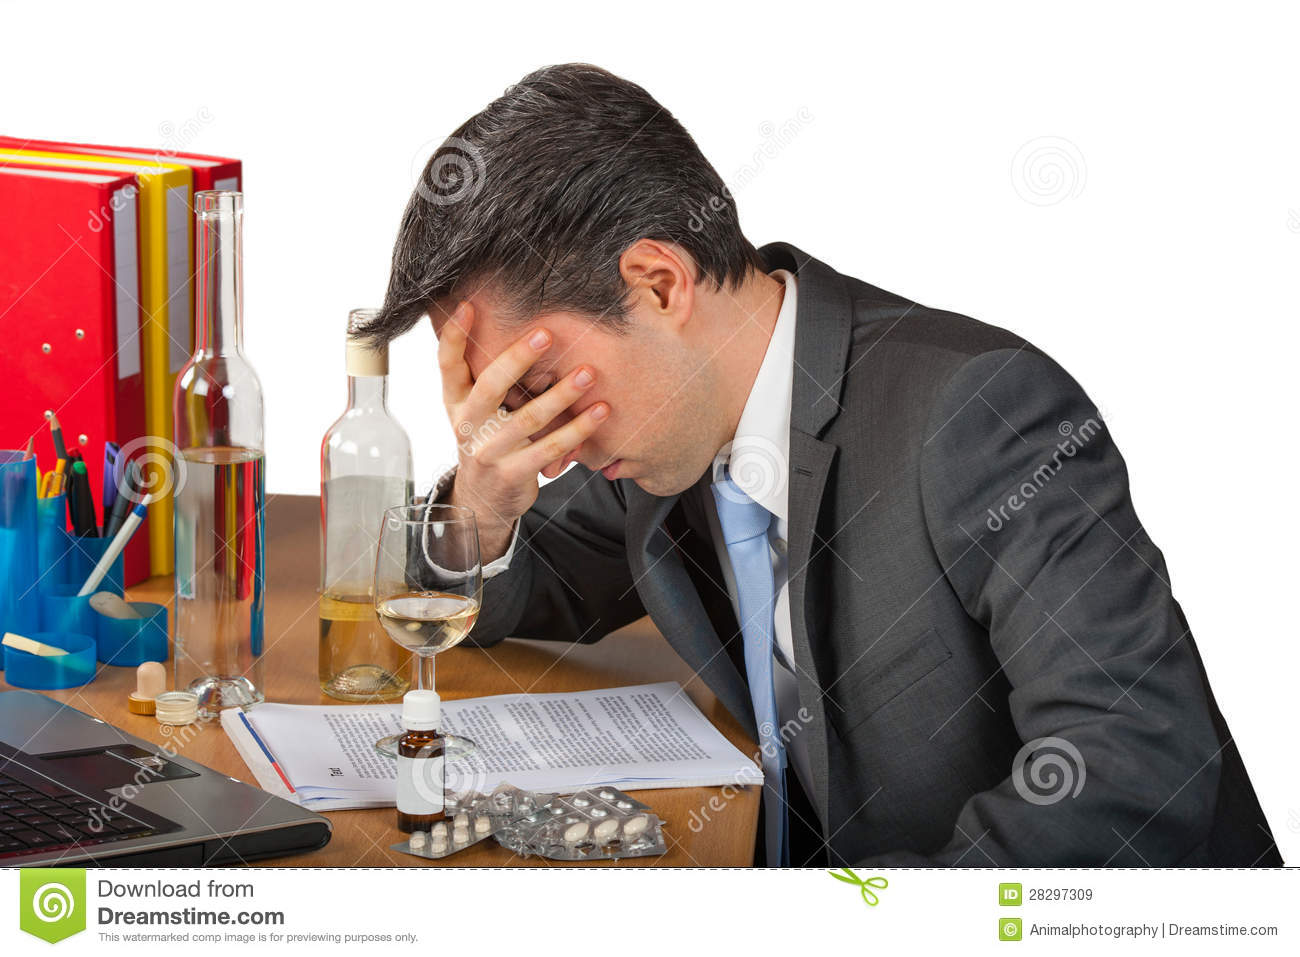 severe costs of alcohol abuse essay Read this essay on alcohol abuse alcoholics cause more accidents and create higher costs in the workplace, and alcohol alcohol abuse also causes severe.